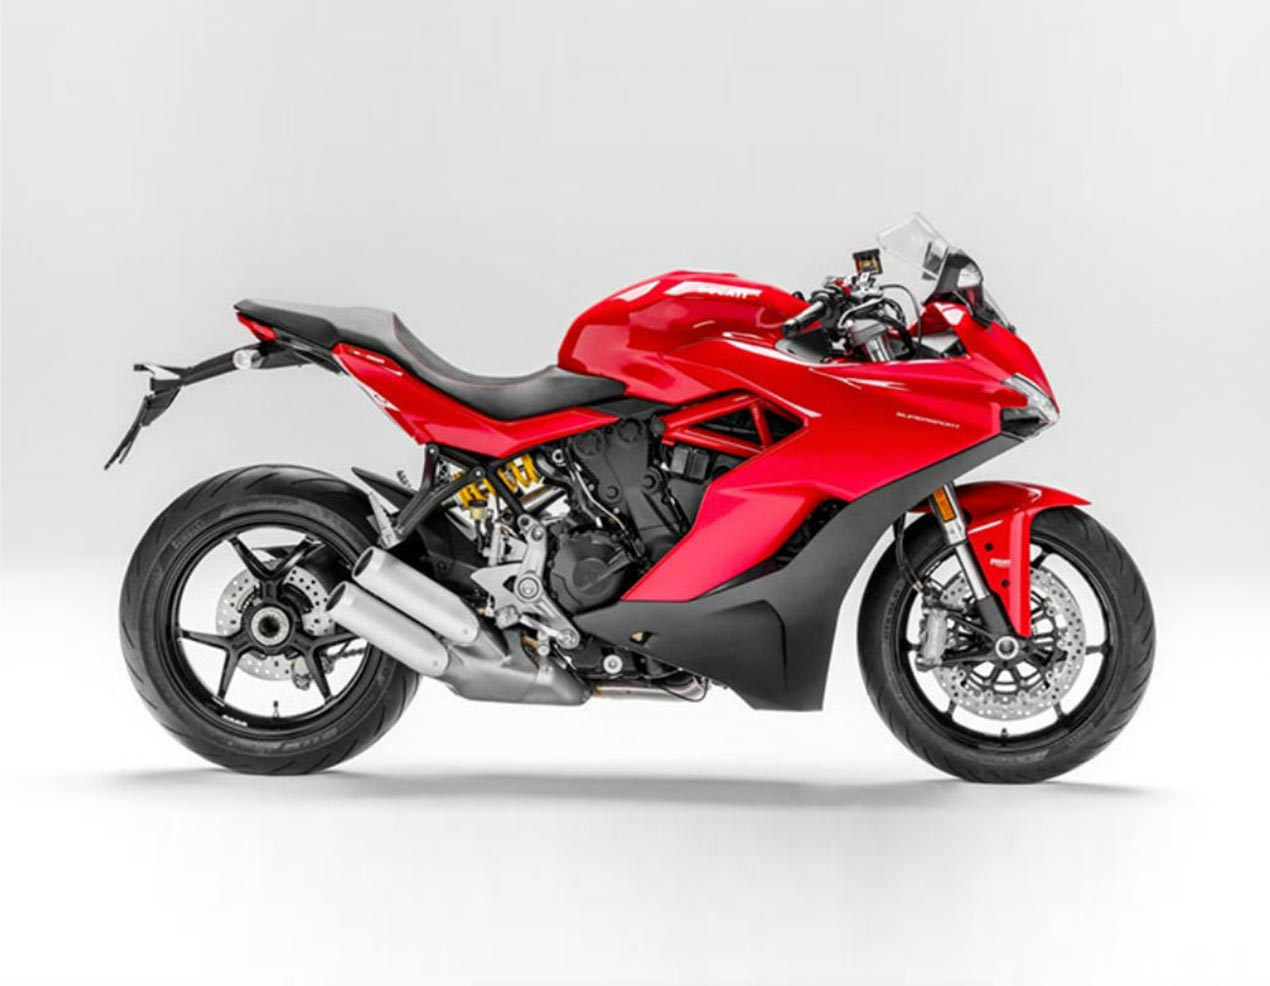 Ducati Supersport Cafe Racer